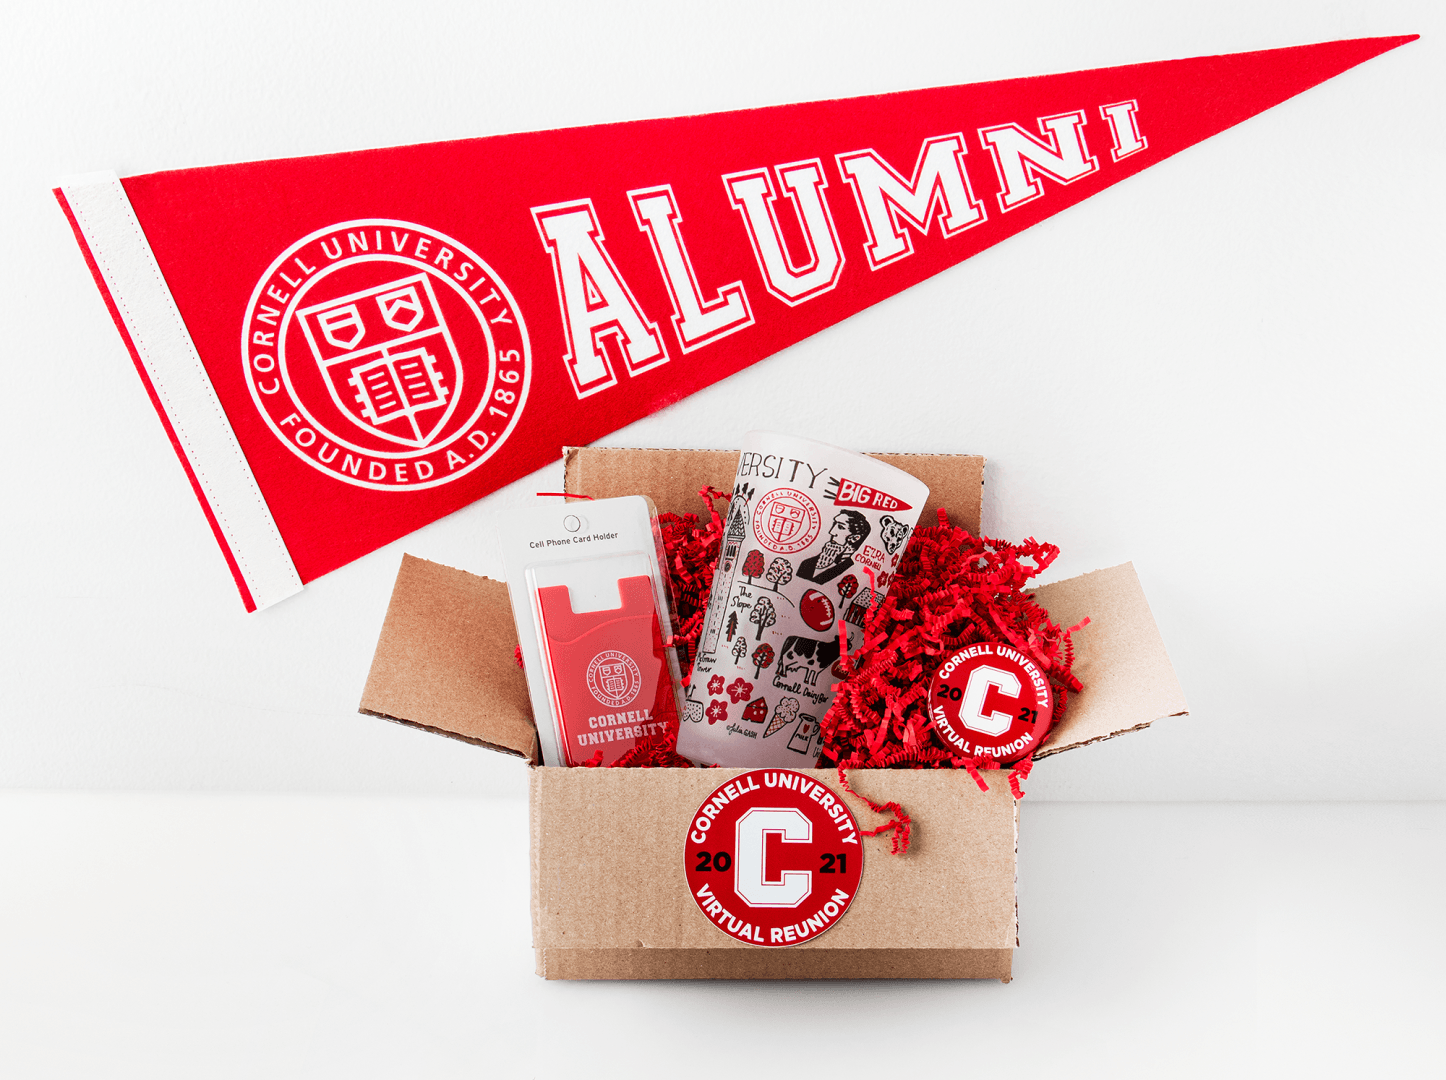 Cornell Store swag for Virtual Reunion